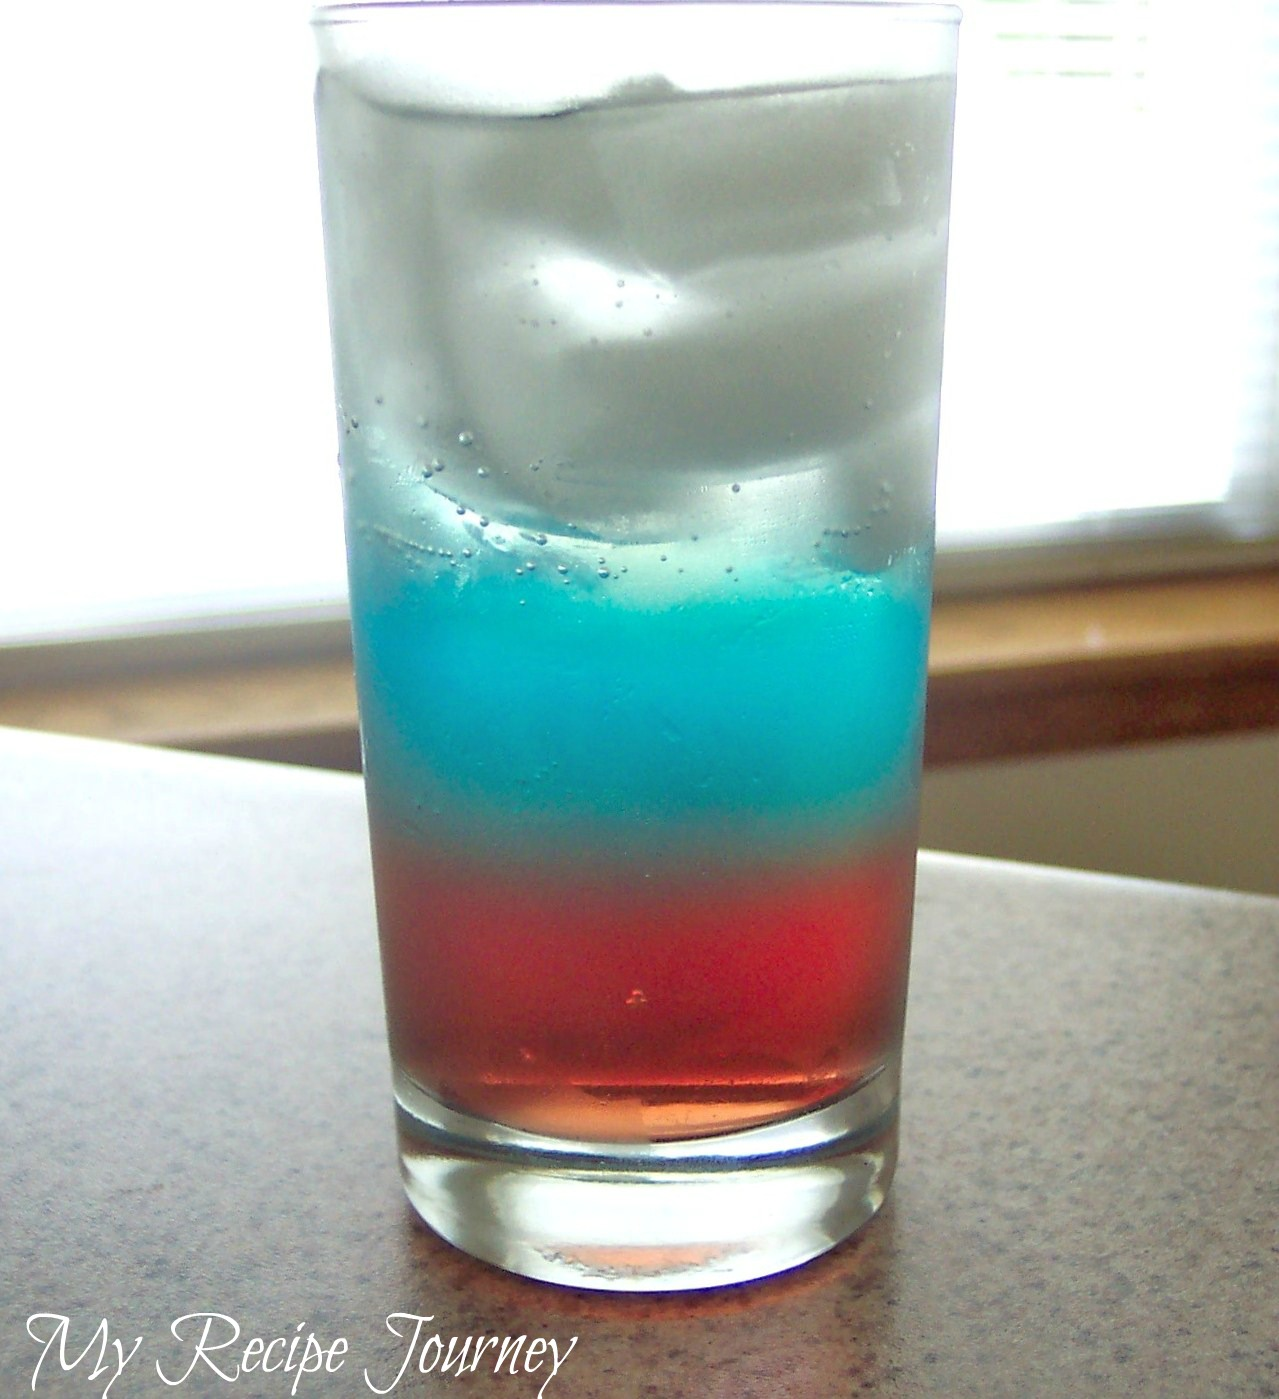 My Recipe Journey: Red White And Blue Drink